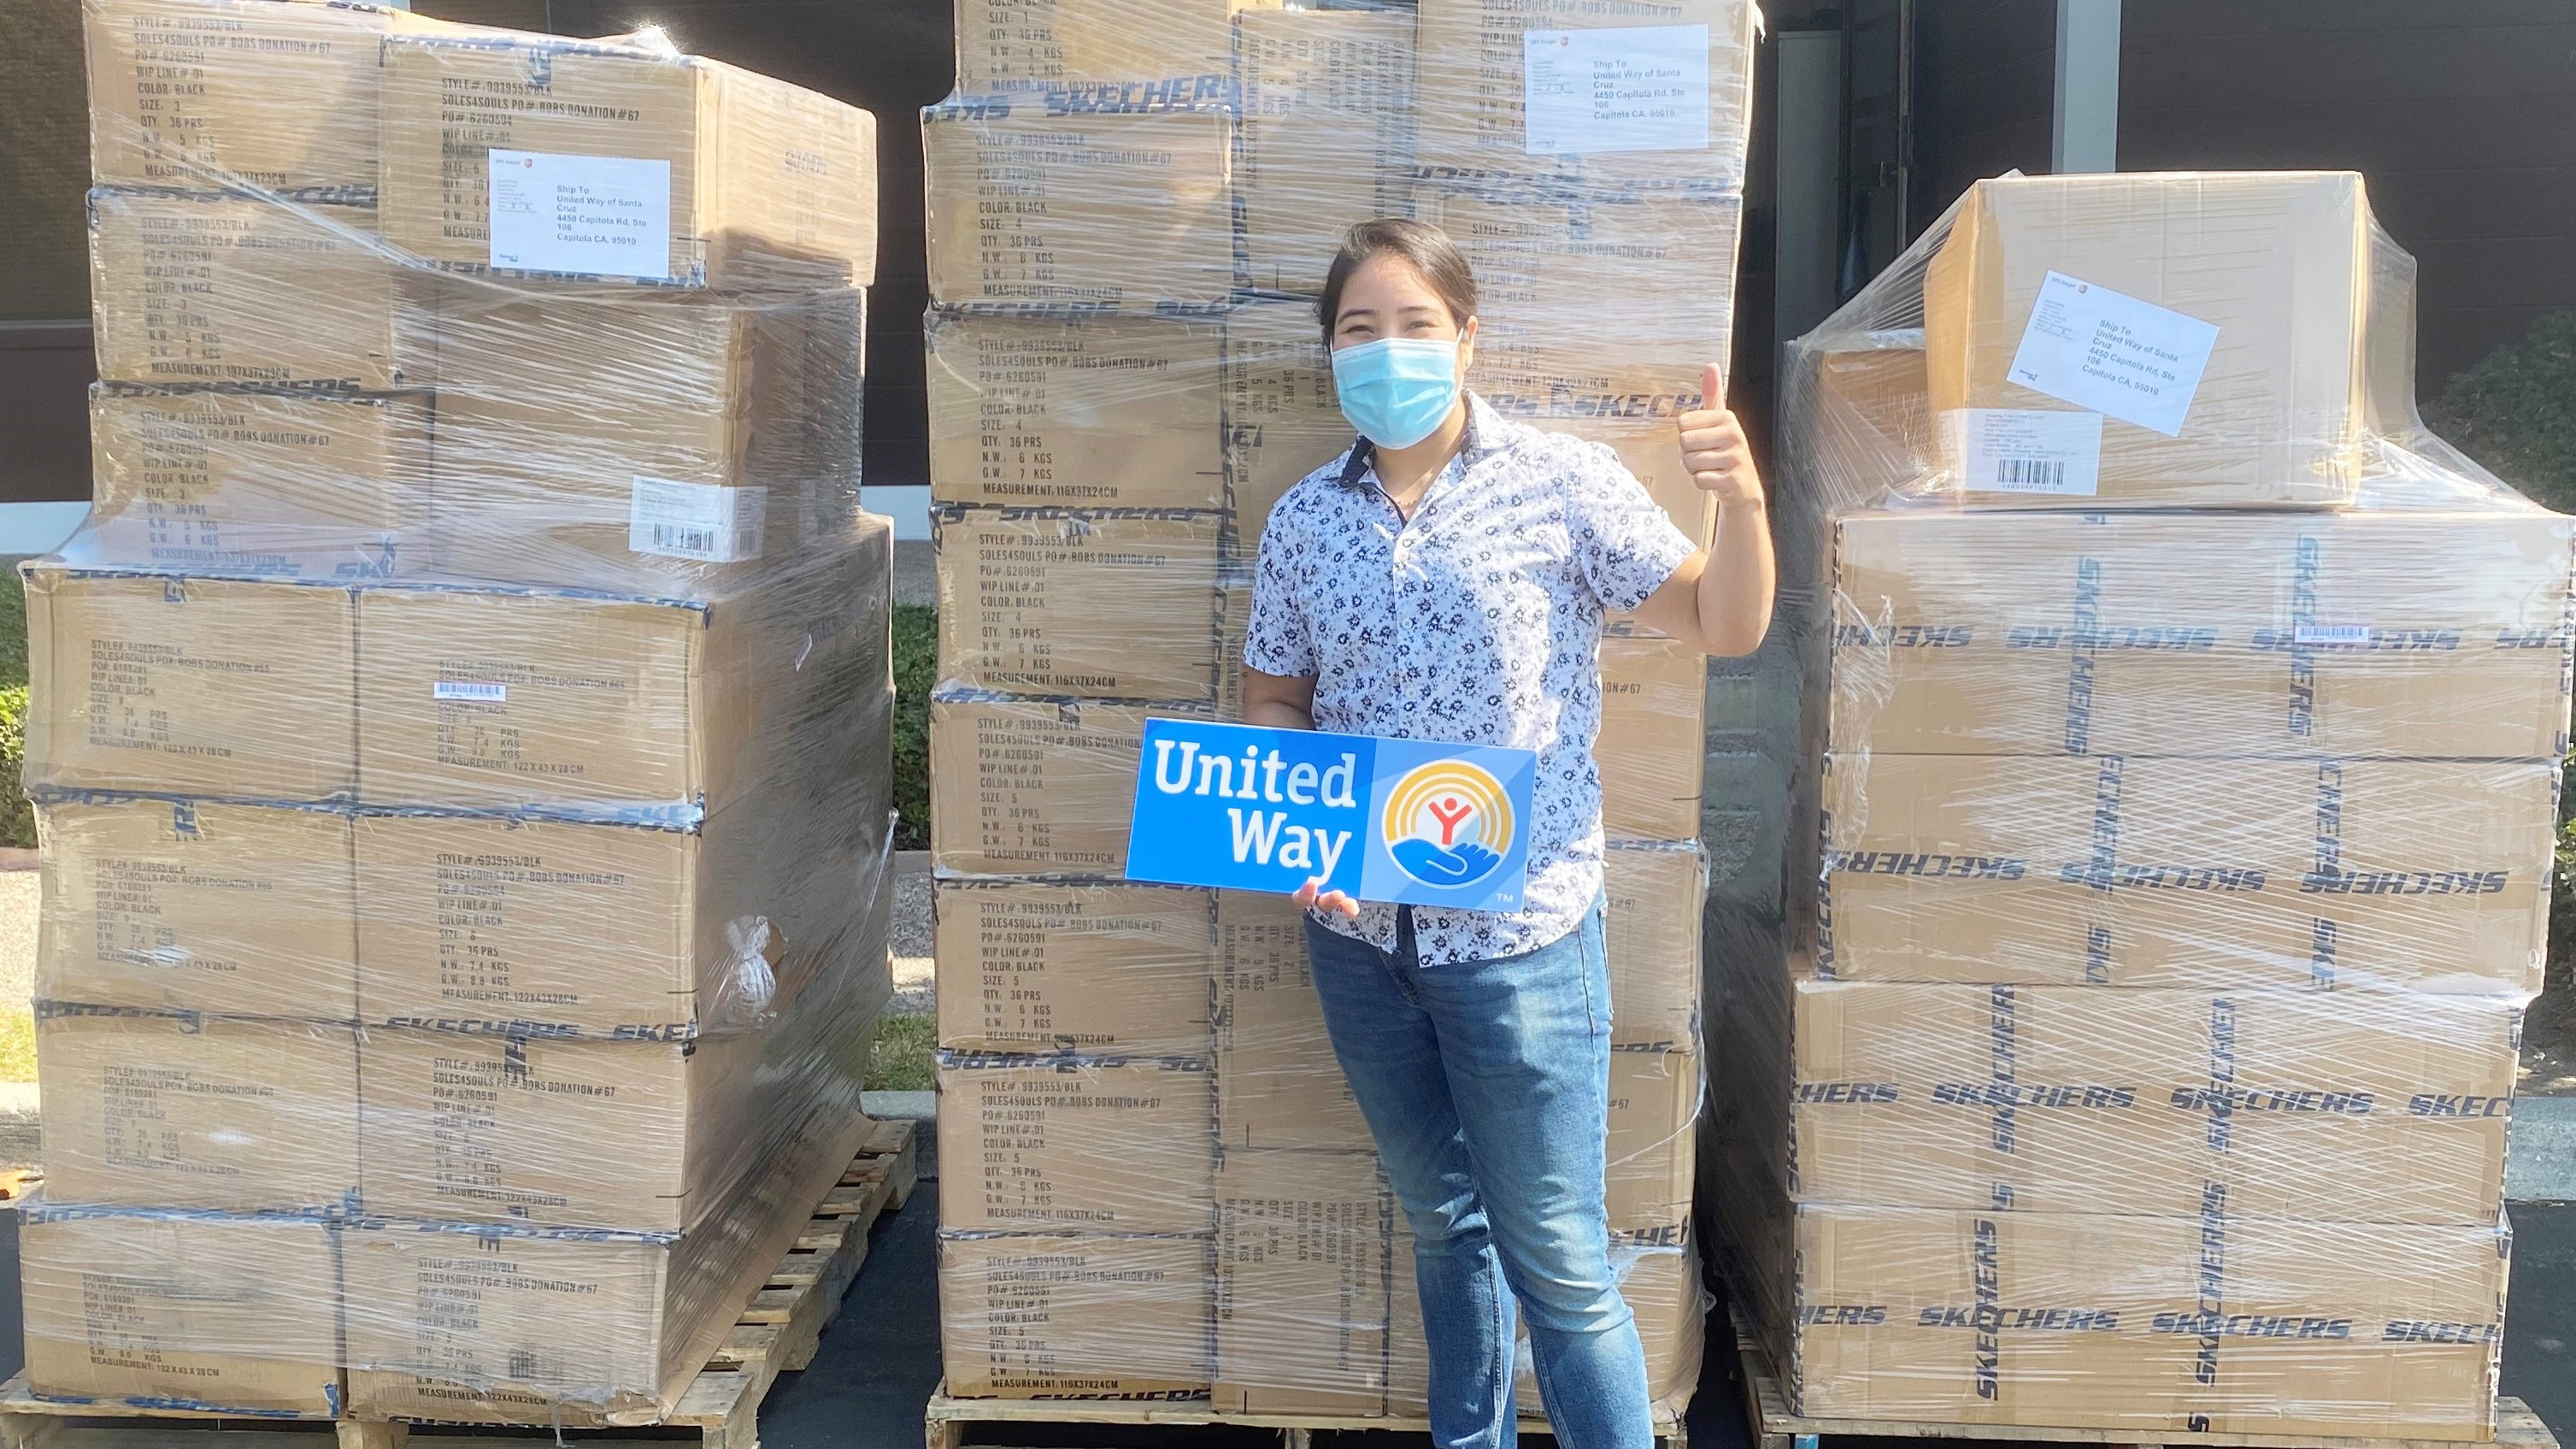 Skechers has donated more than 16 million new pairs of shoes to children in need globally, including pairs to the United Way - helping homeless families in Santa Cruz's CZU August Lightning Complex fires in California and Almeda fires in Oregon. Photo Credit: United Way of Santa Cruz County